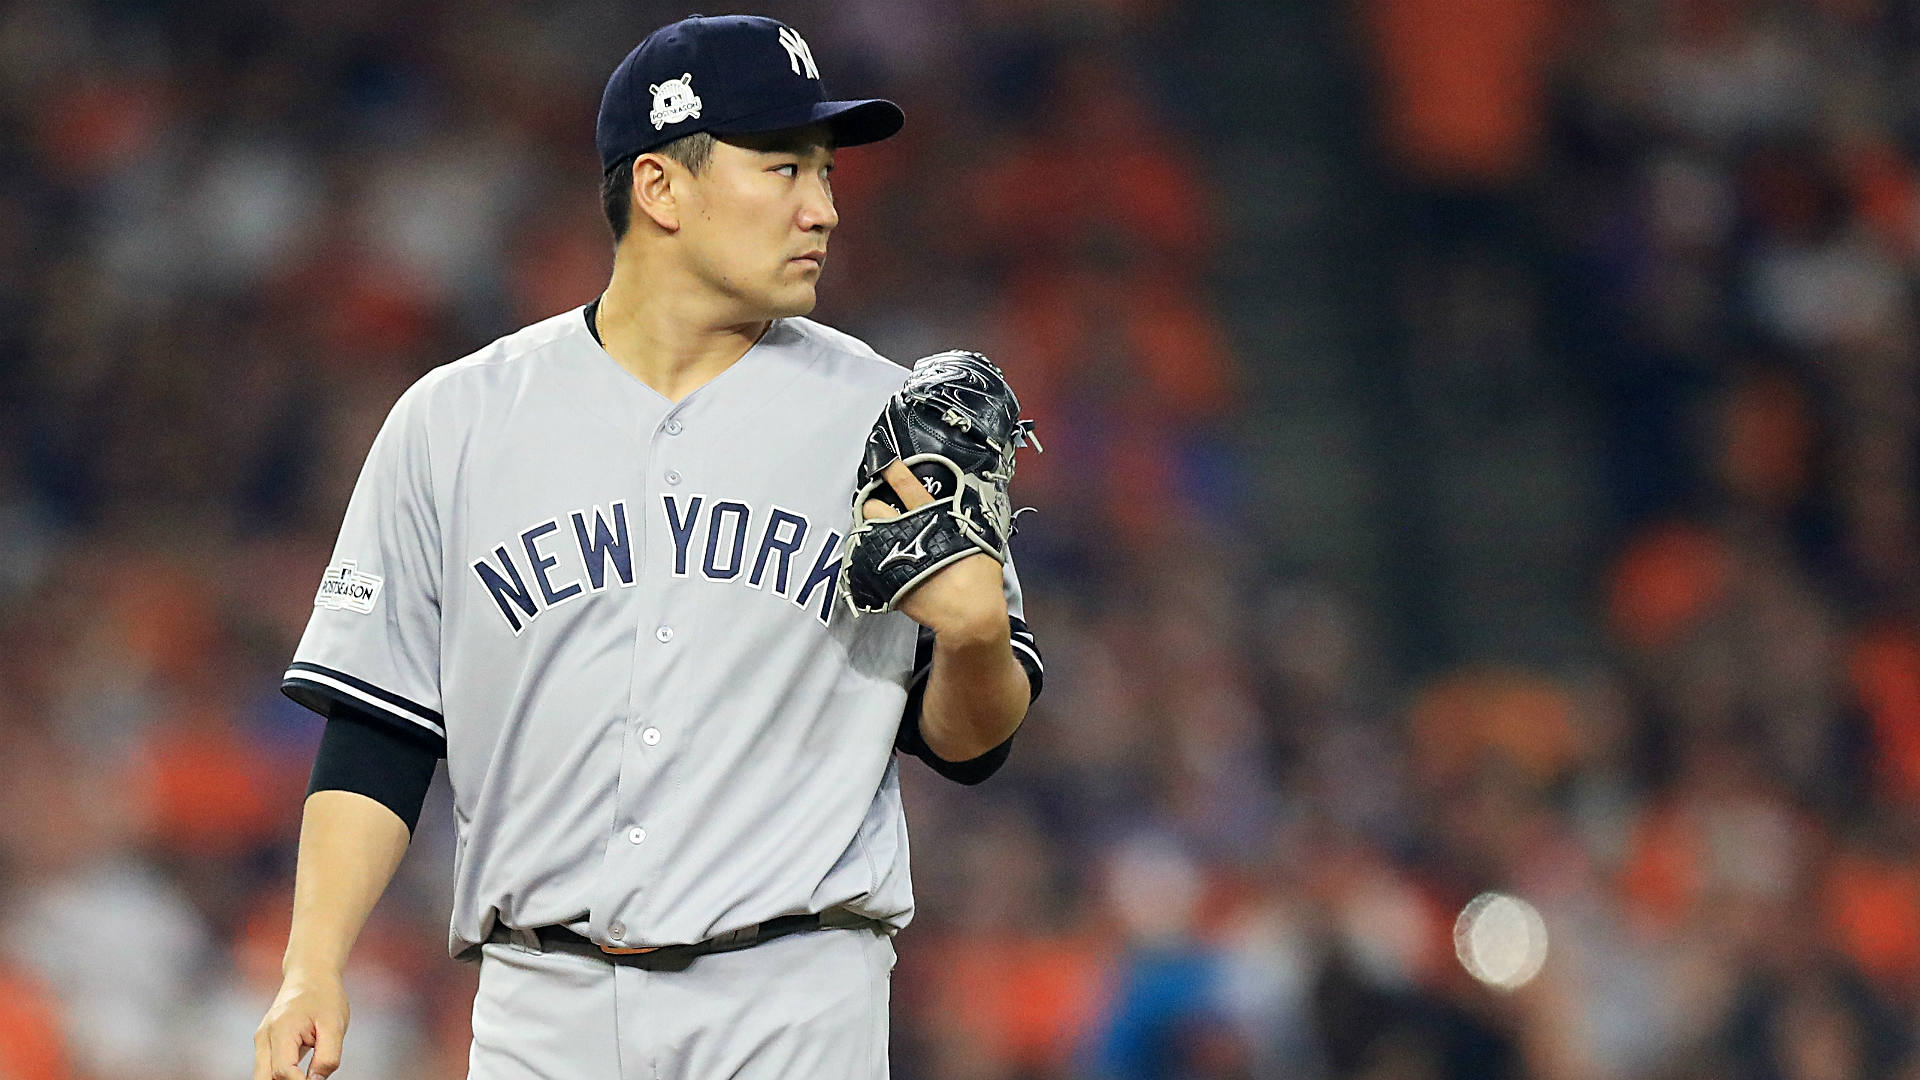 Masahiro Tanaka hit in head by Giancarlo Stanton line drive during Yankees camp